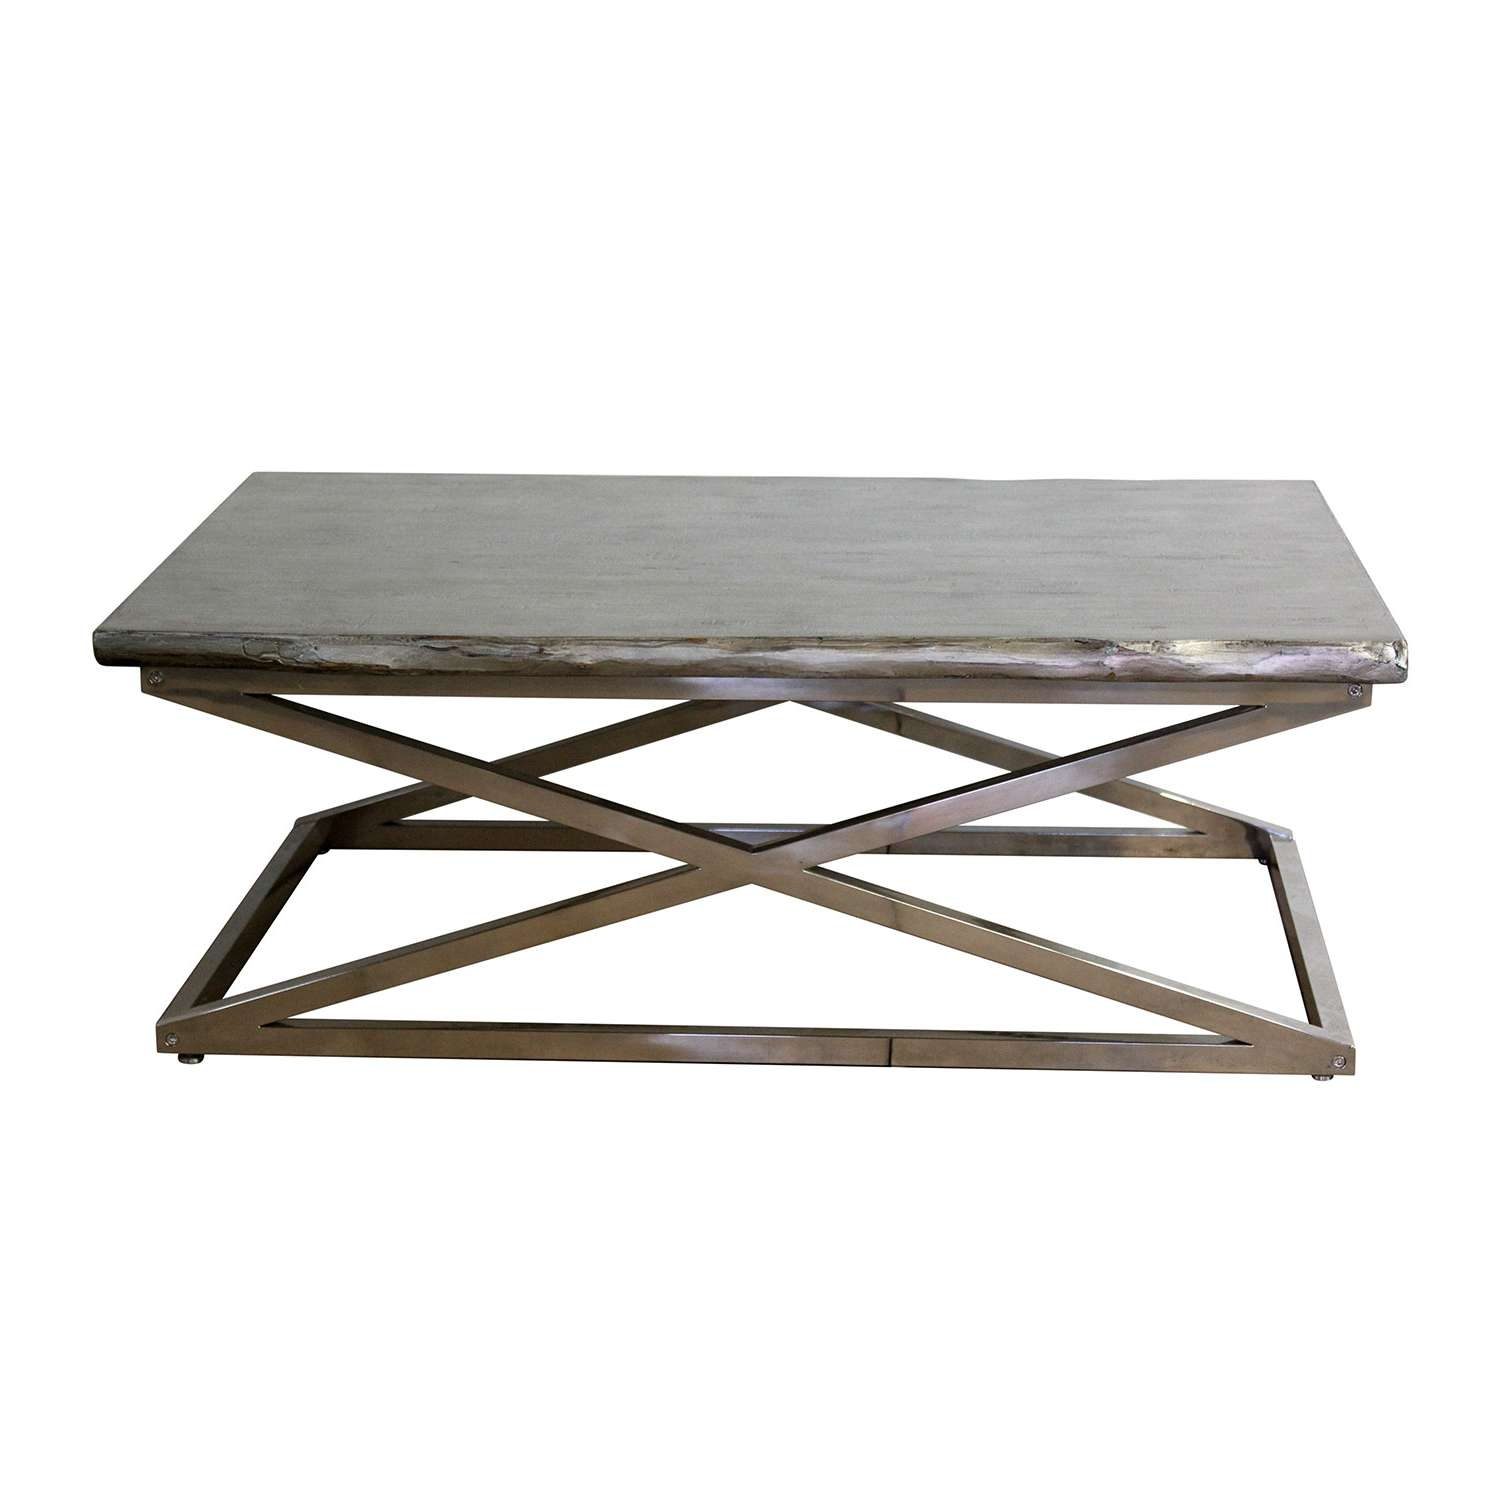 Glass And Chrome Coffee Table Ideas Table / Thippo Inside Most Recent Wood Chrome Coffee Tables (View 8 of 20)